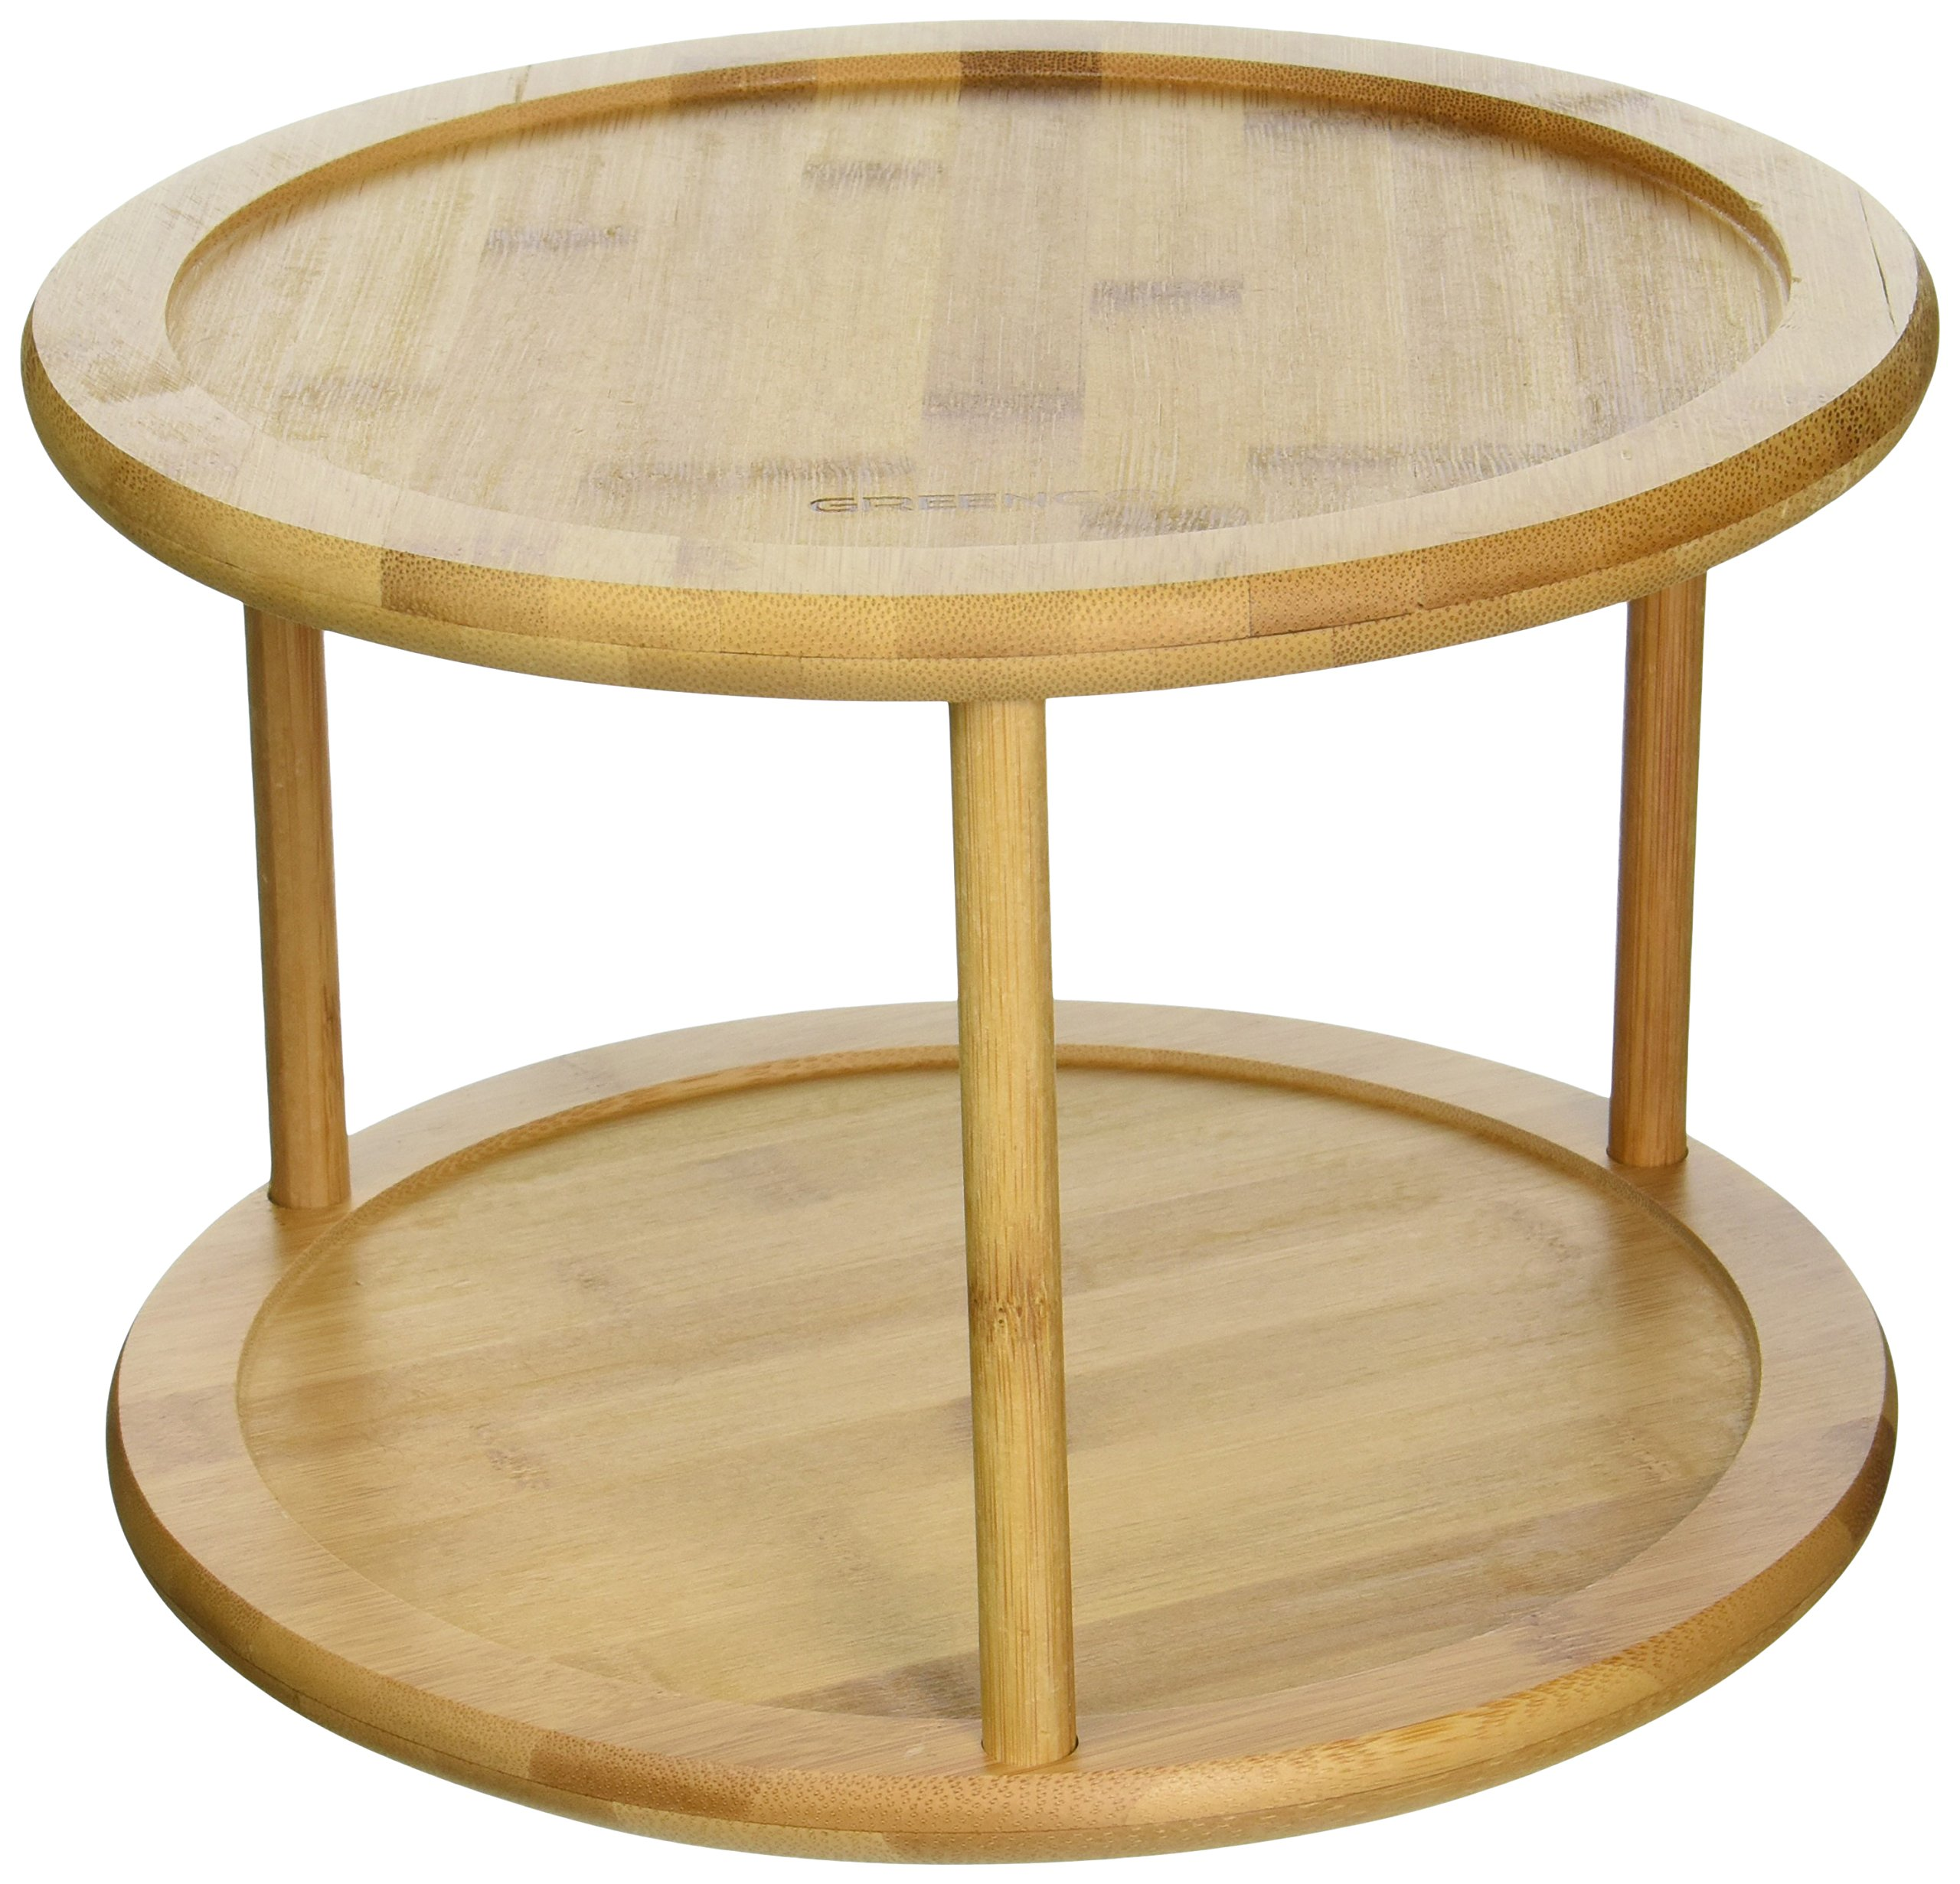 Get Quotations Greenco Premium Bamboo 2 Tier Lazy Susan Turntable